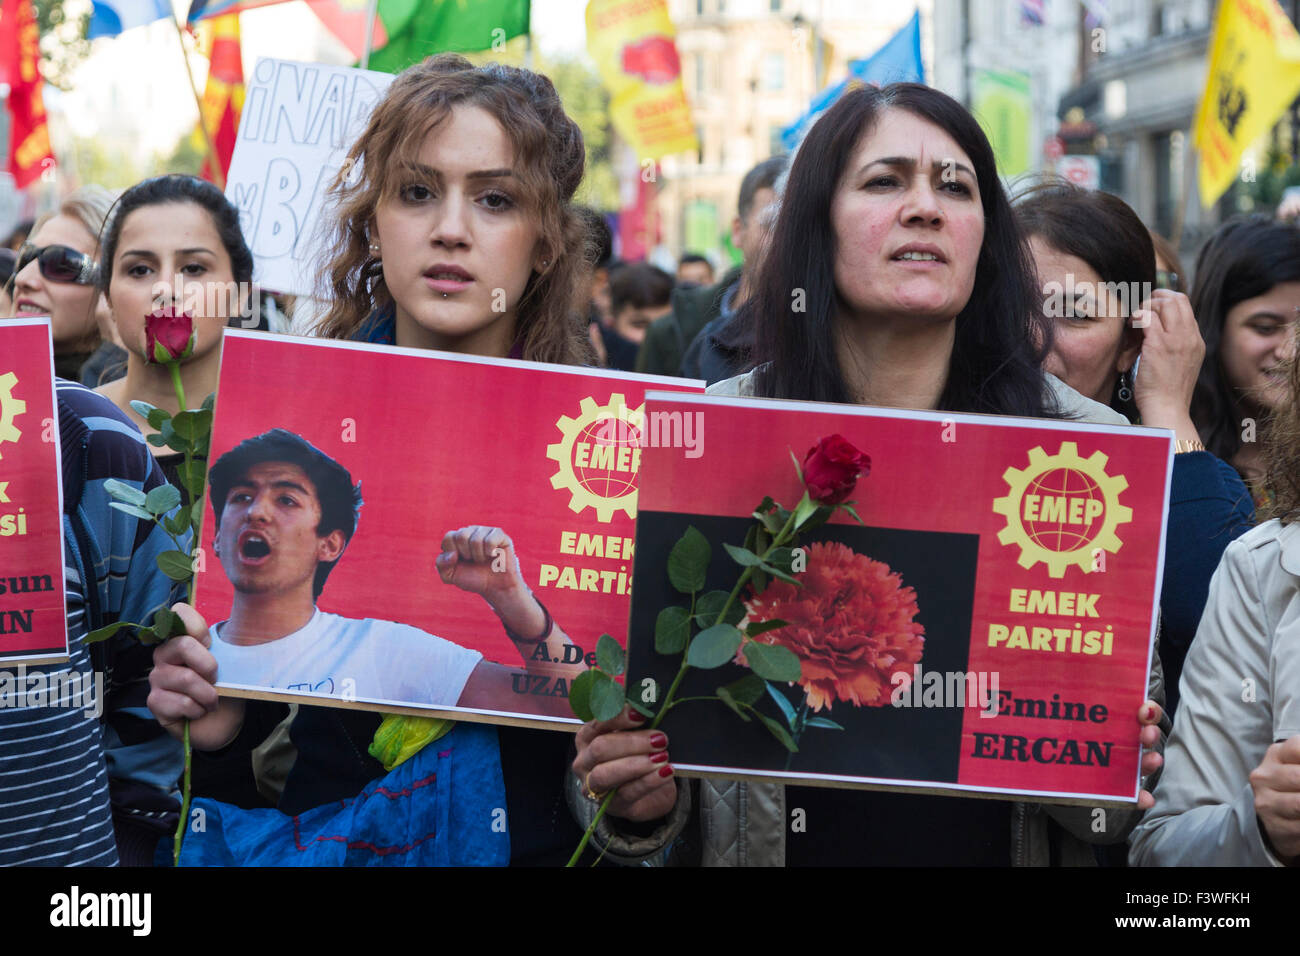 London, UK. 11/10/2015. Protesters from Emek Partisi hold up pictures of people killed in Ankara. Several thousand Stock Photo